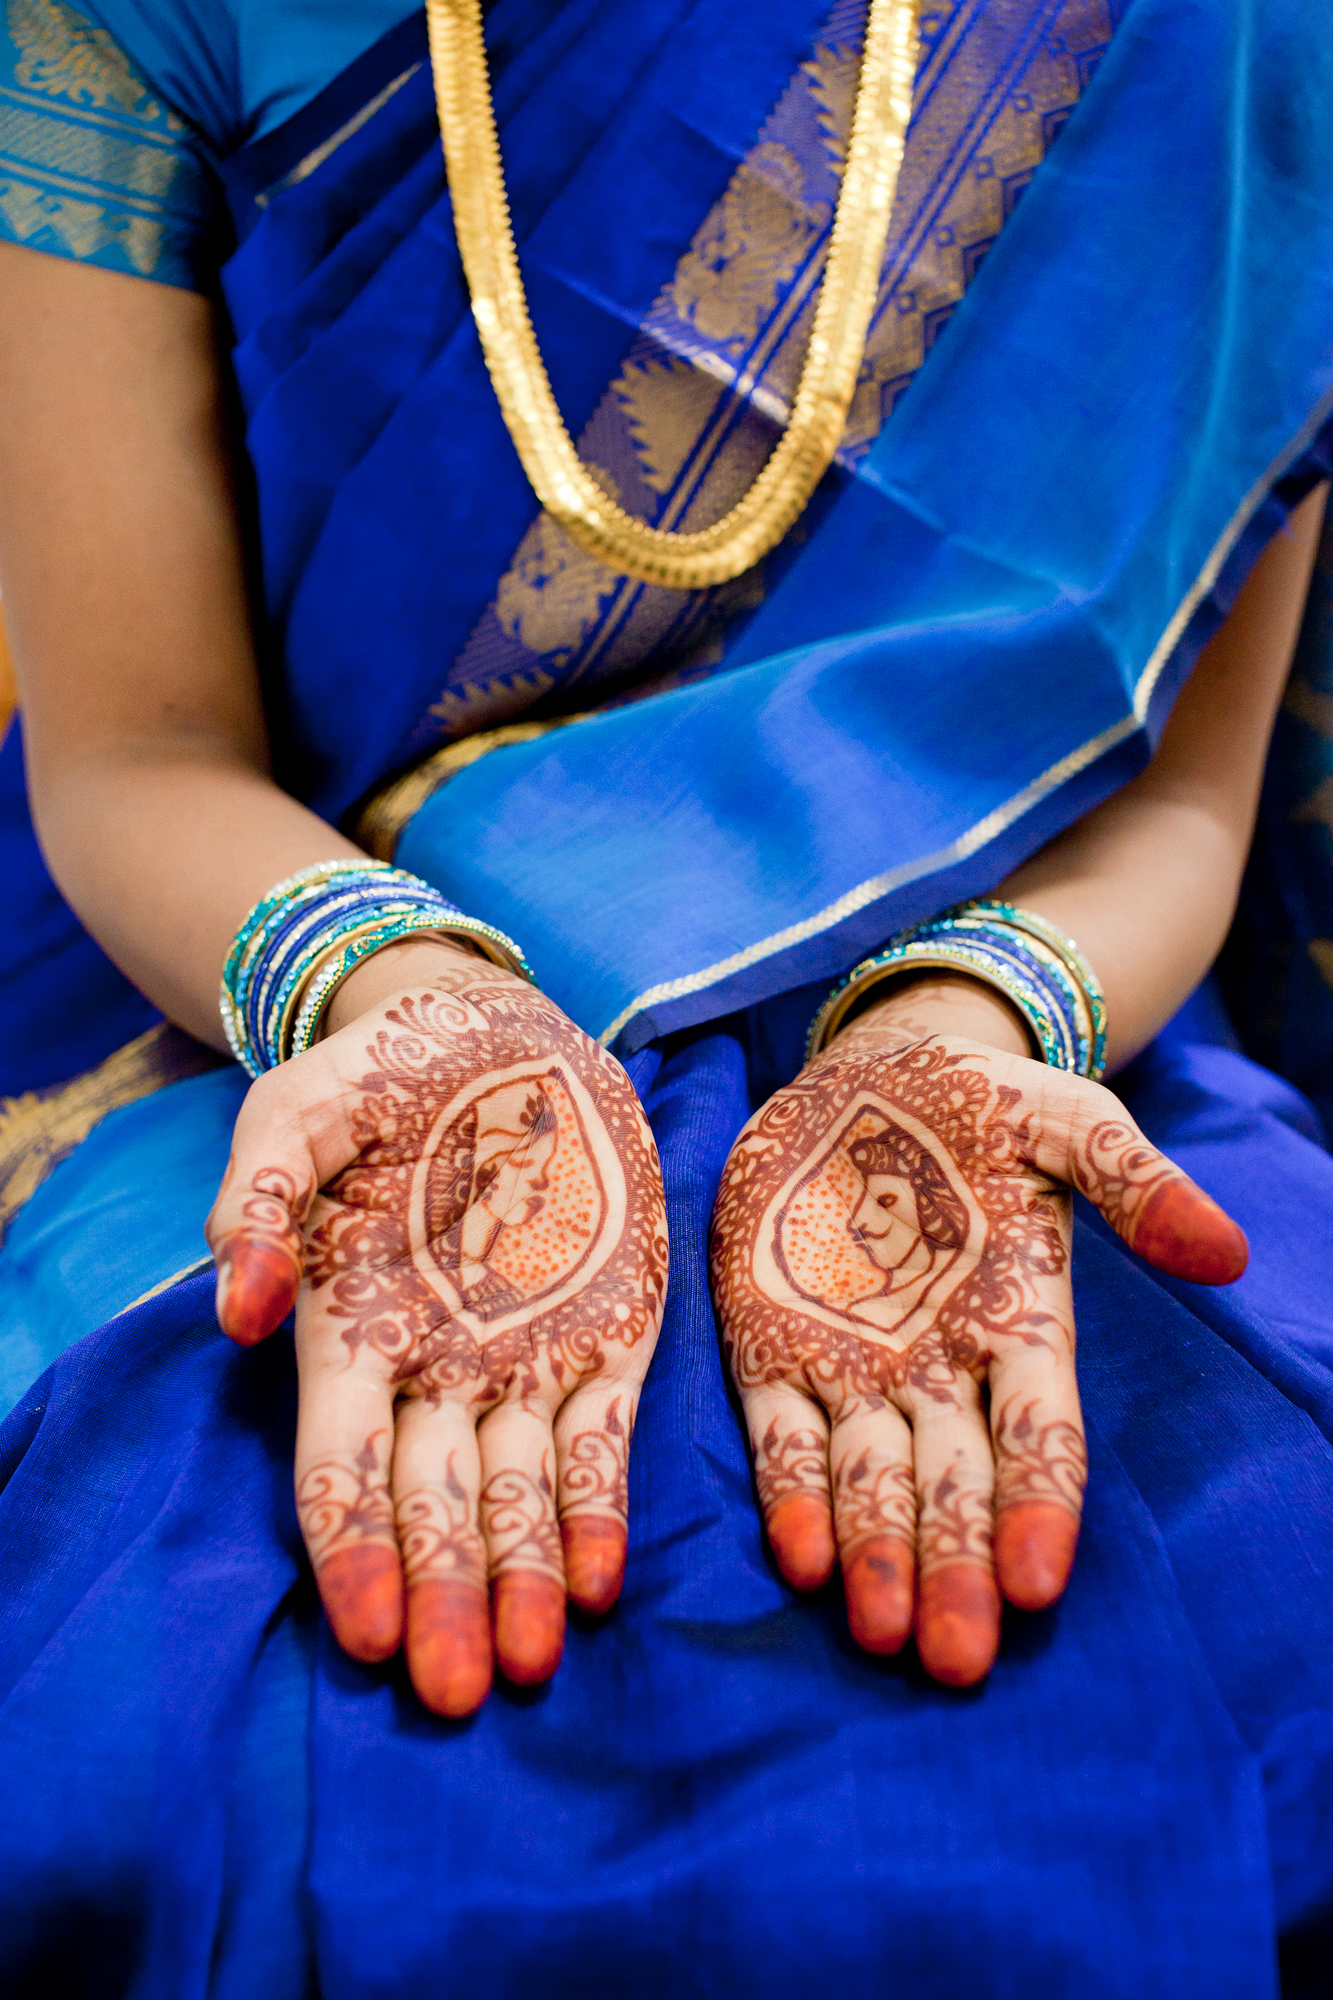 087_CarlyGaebe_SteadfastStudio_WeddingPhotography_NewYorkCity_Queens_GaneshTemple_Hindu_Indian_Henna_Mehndi_Bride.jpg